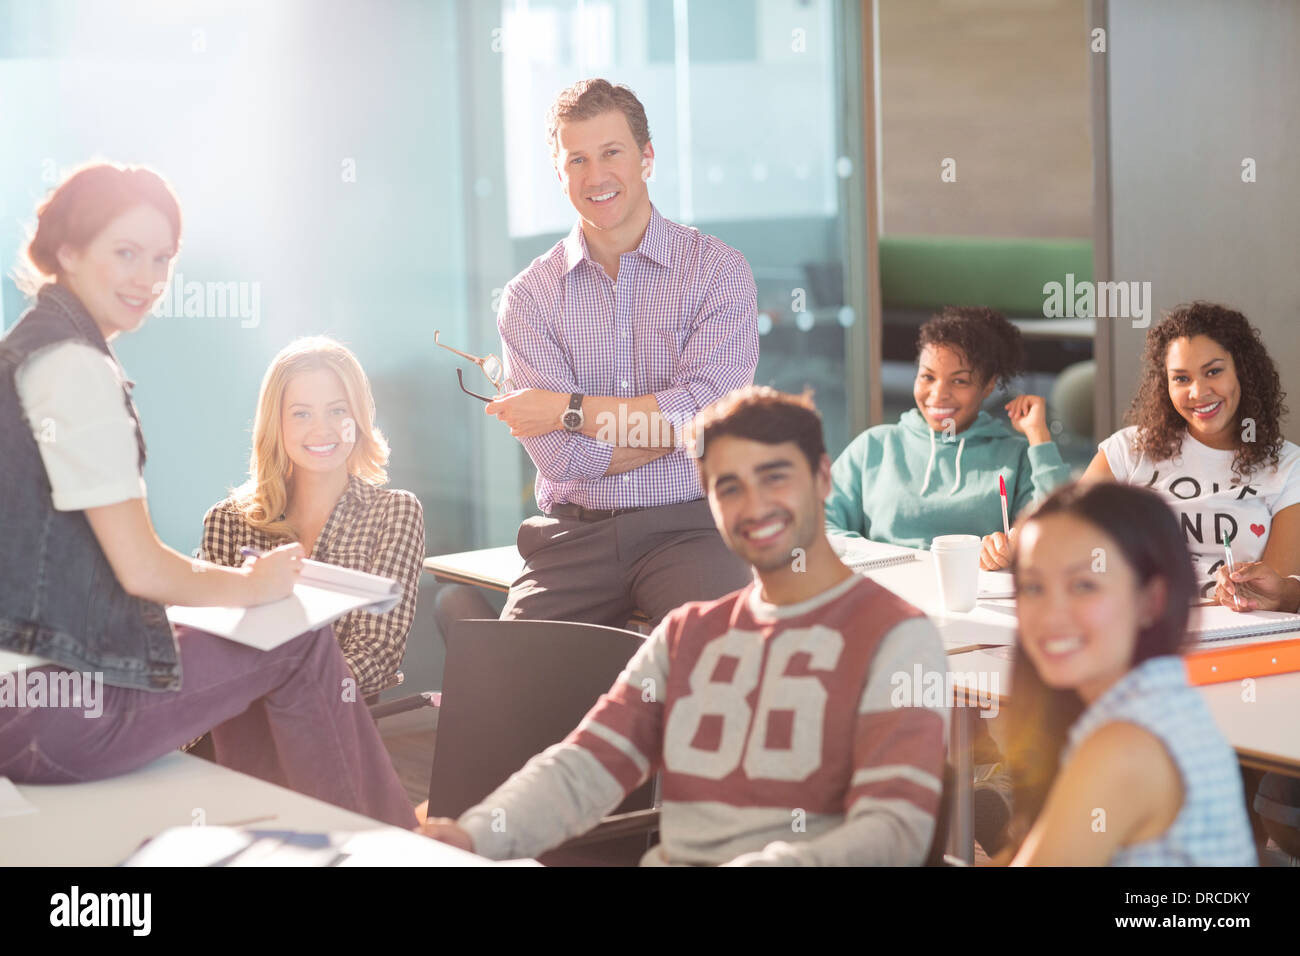 Professor and university students smiling in classroom - Stock Image